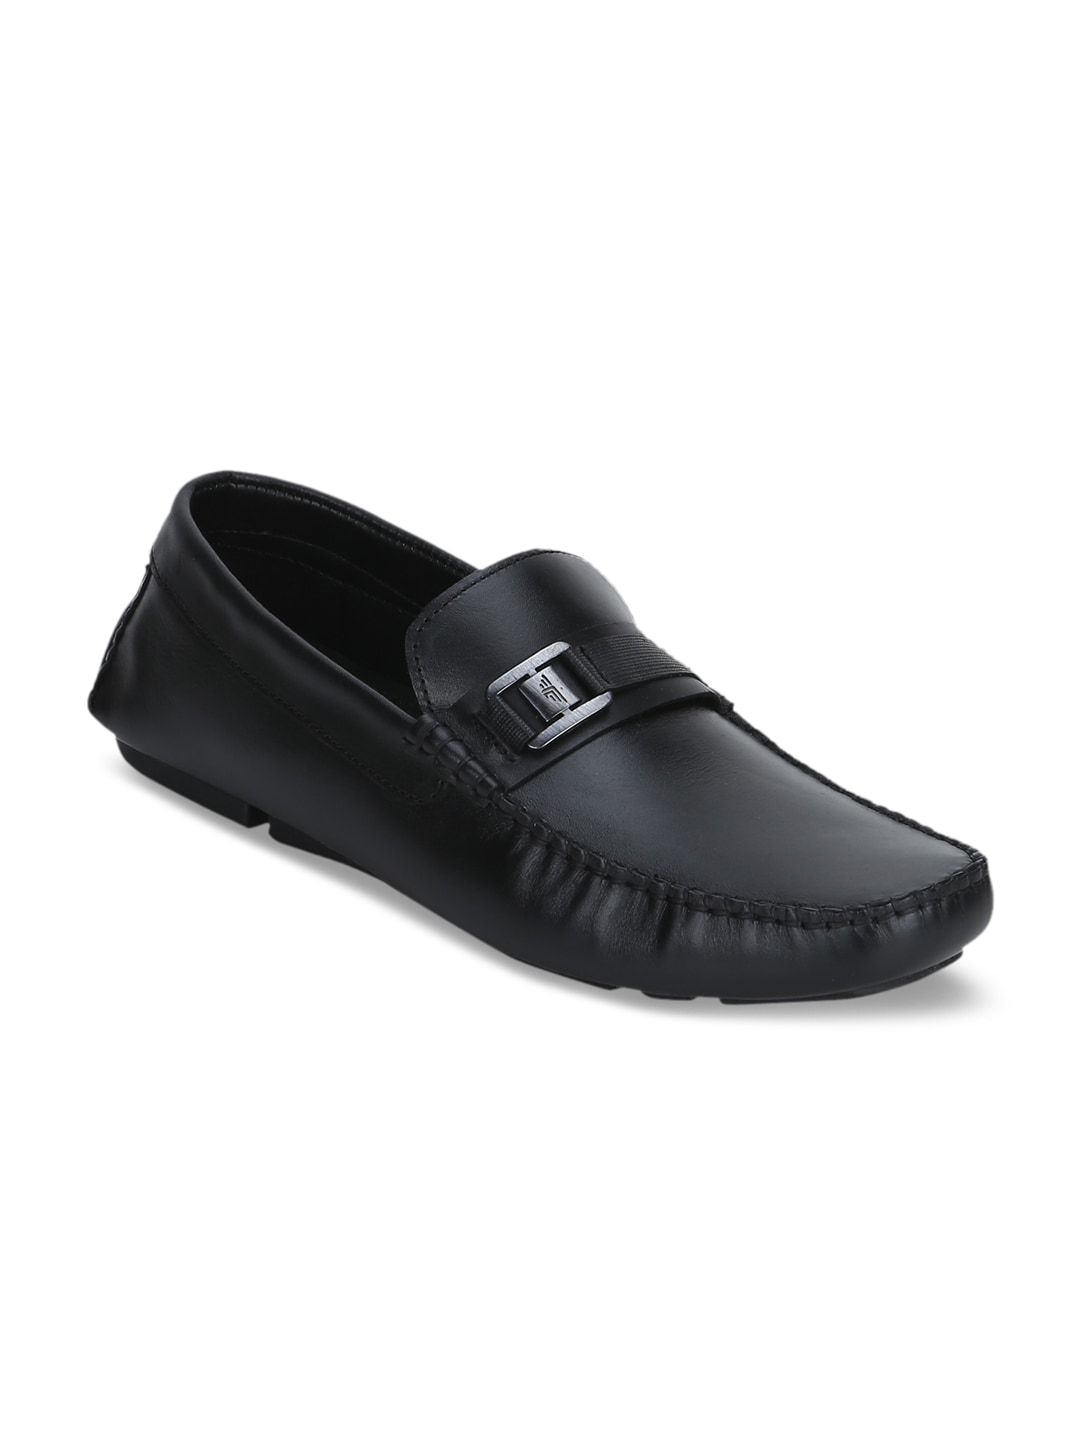 c4415ab5a Men Footwear Shoe Sandal Casual Shoes Belts - Buy Men Footwear Shoe Sandal  Casual Shoes Belts online in India